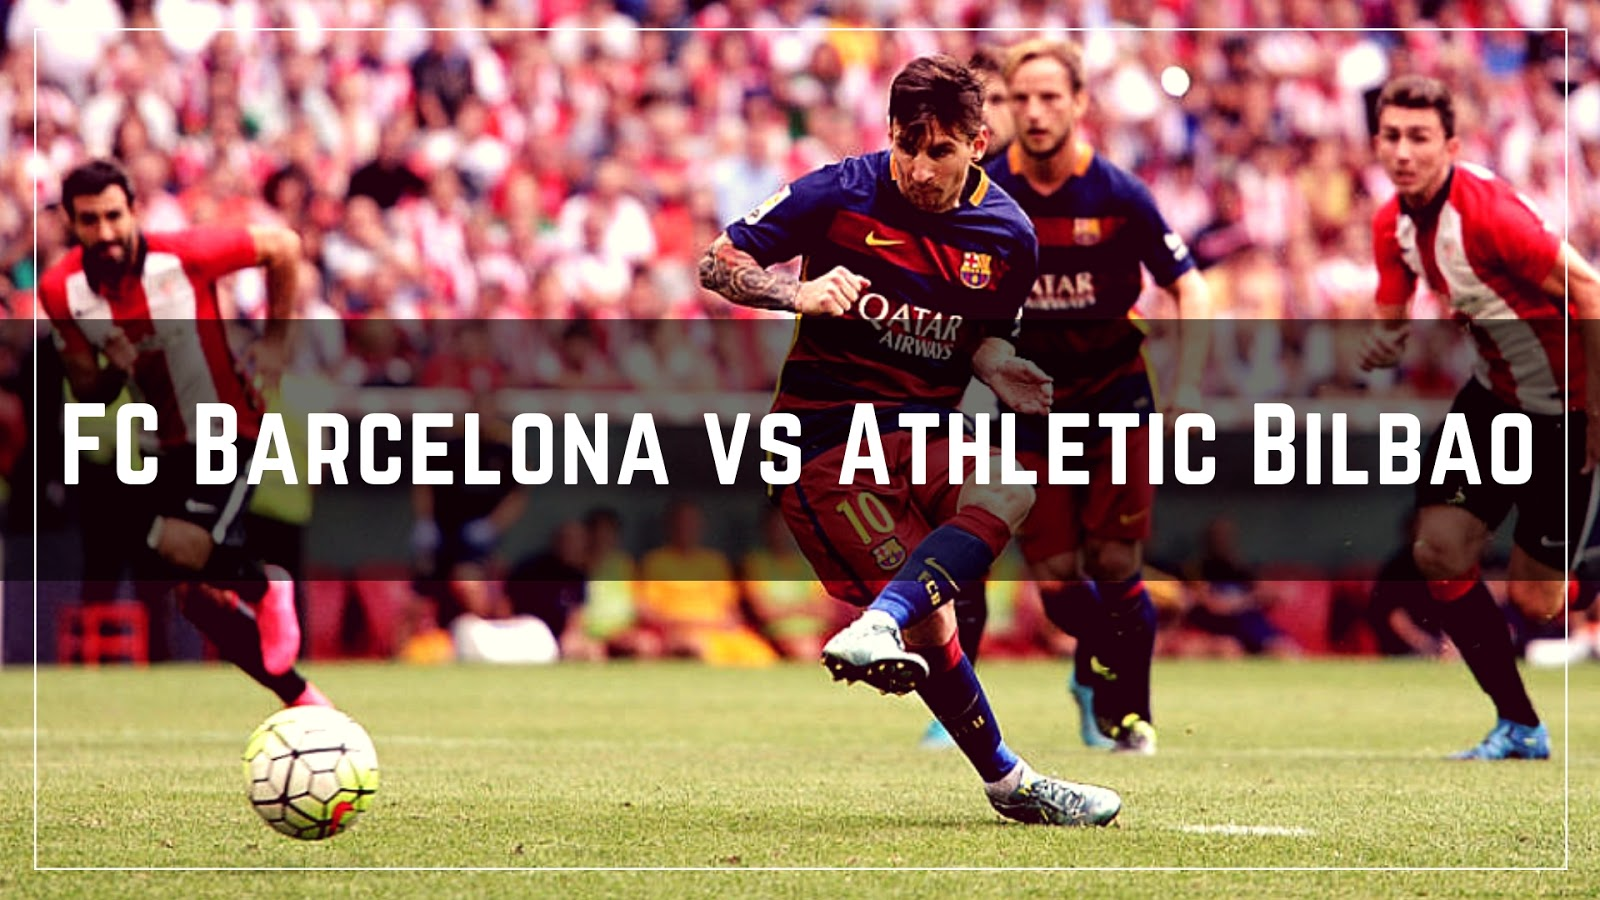 Lionel Messi Scoring Against Athletic Bilbao - Barcelona Vs Athletic Bilbao H2h , HD Wallpaper & Backgrounds